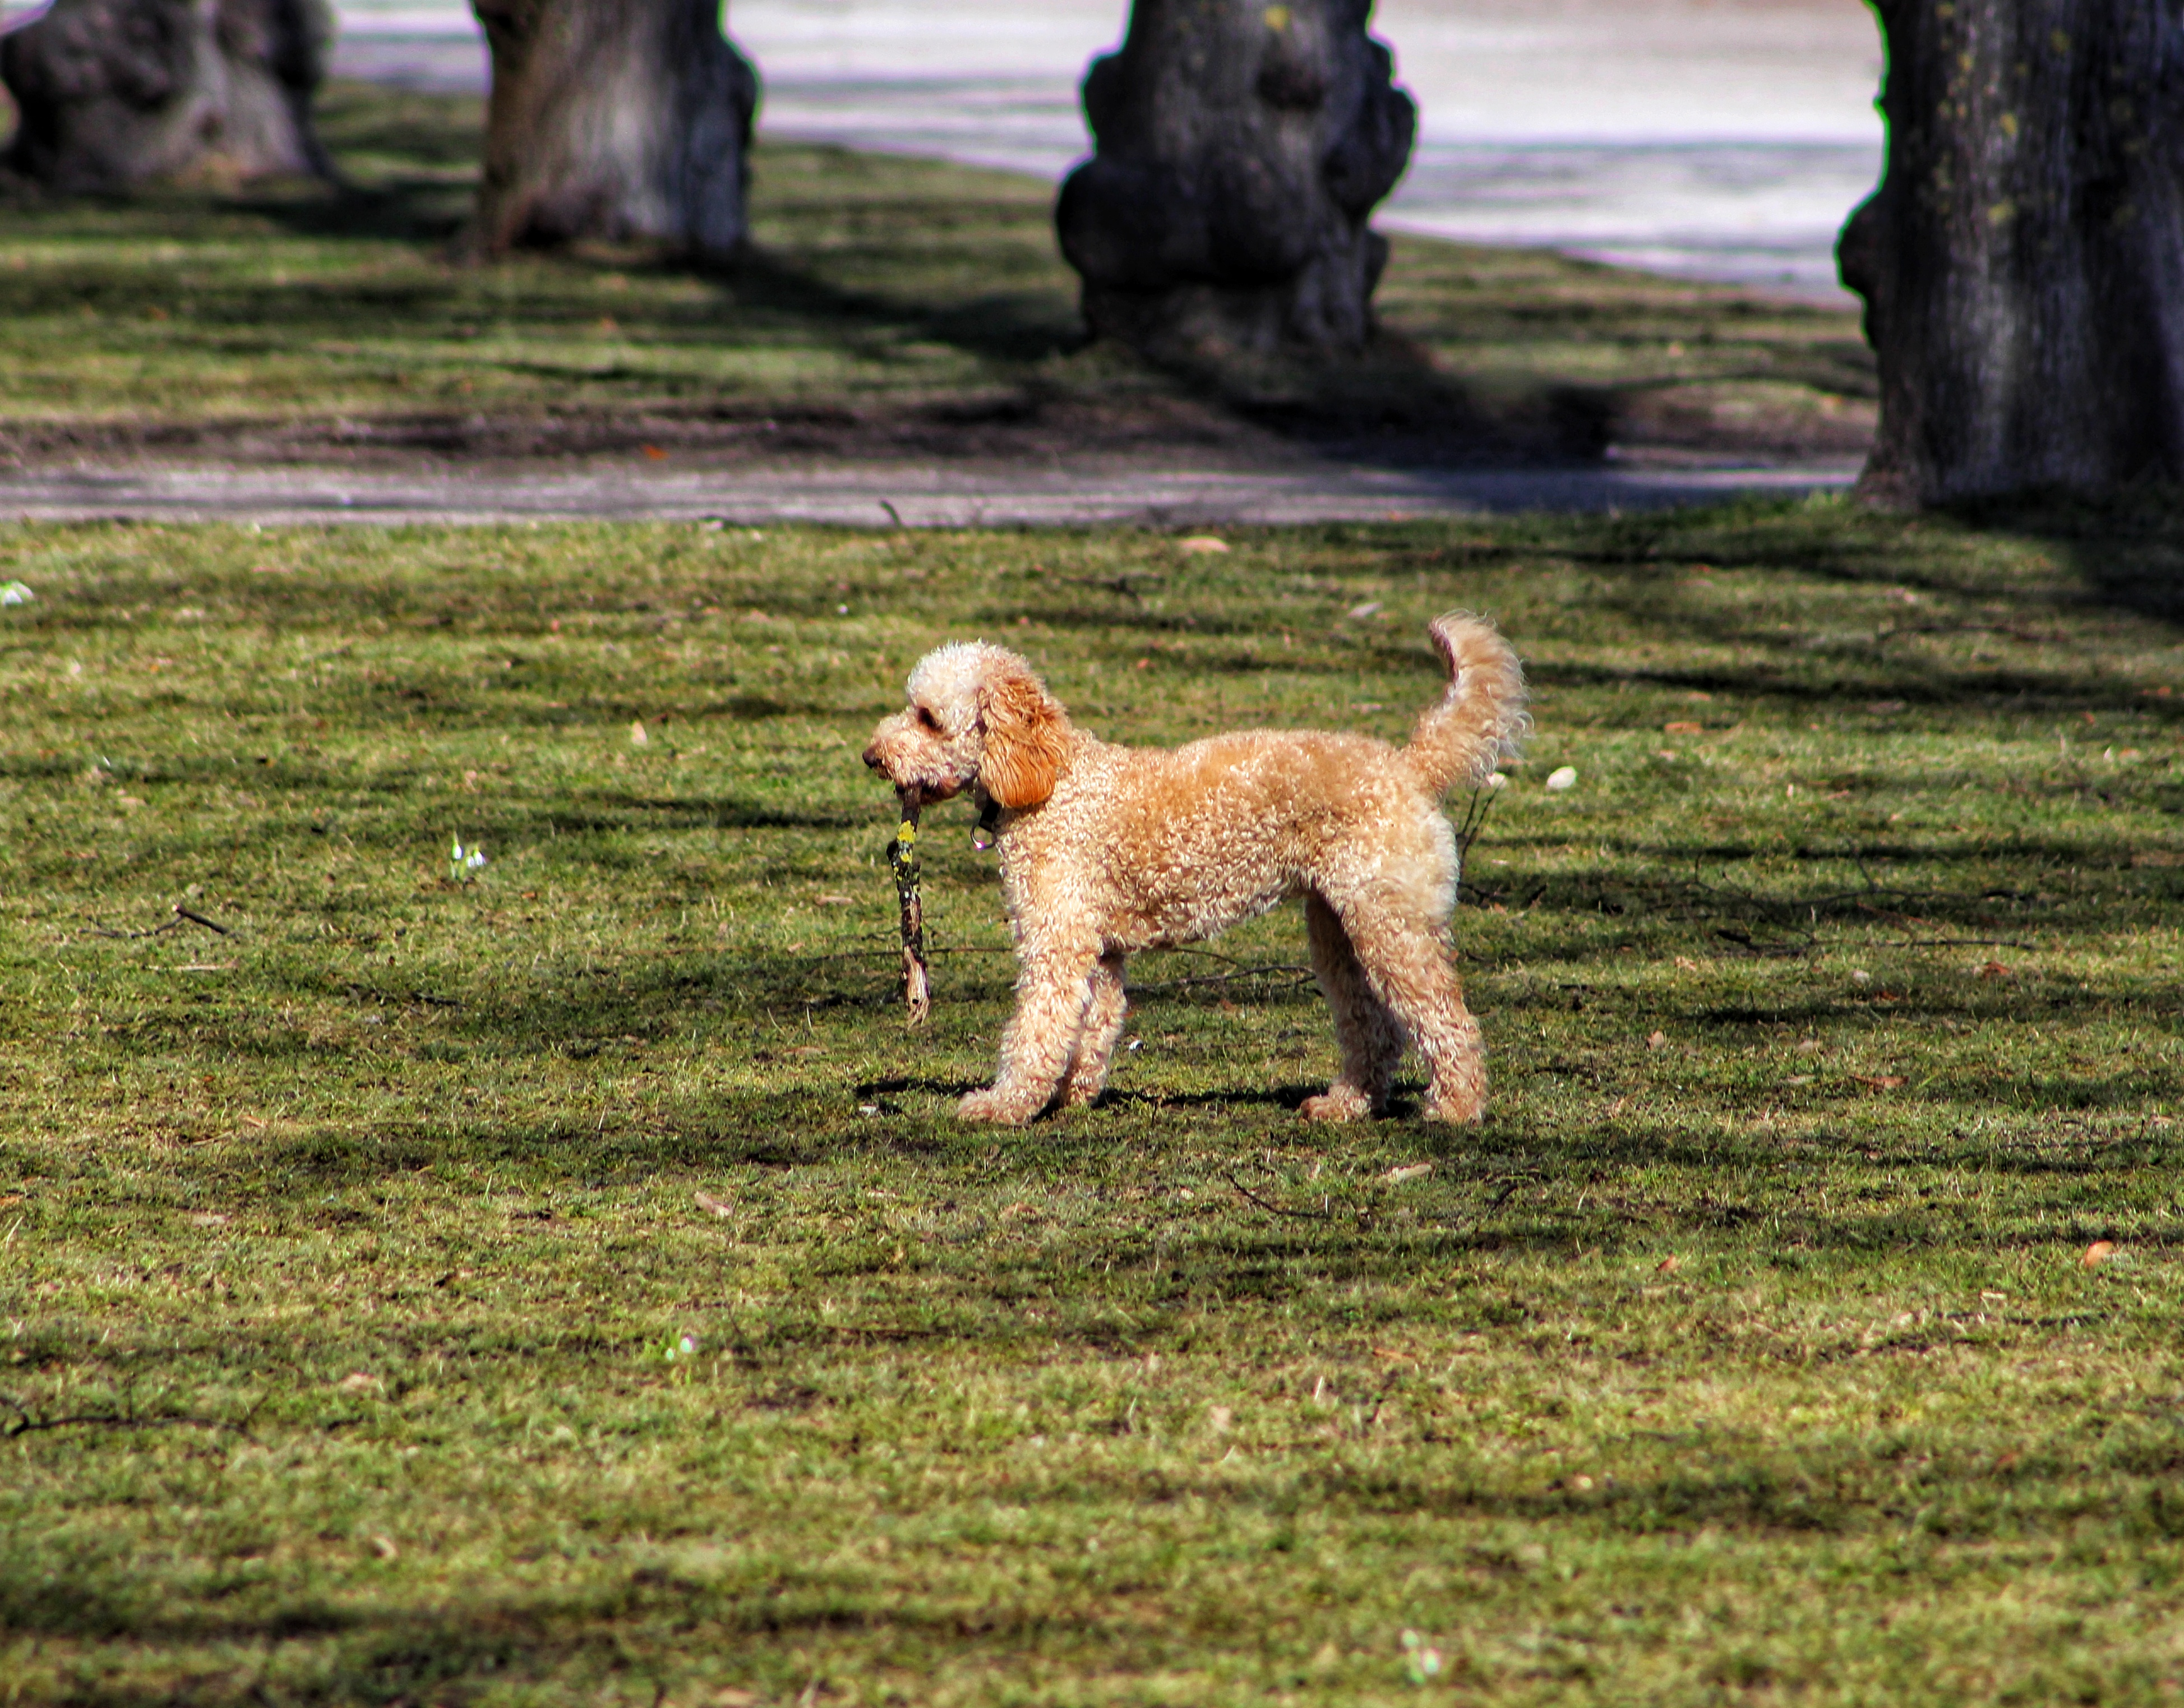 Game of stick, Animal, Breed, Dog, Doodle, HQ Photo